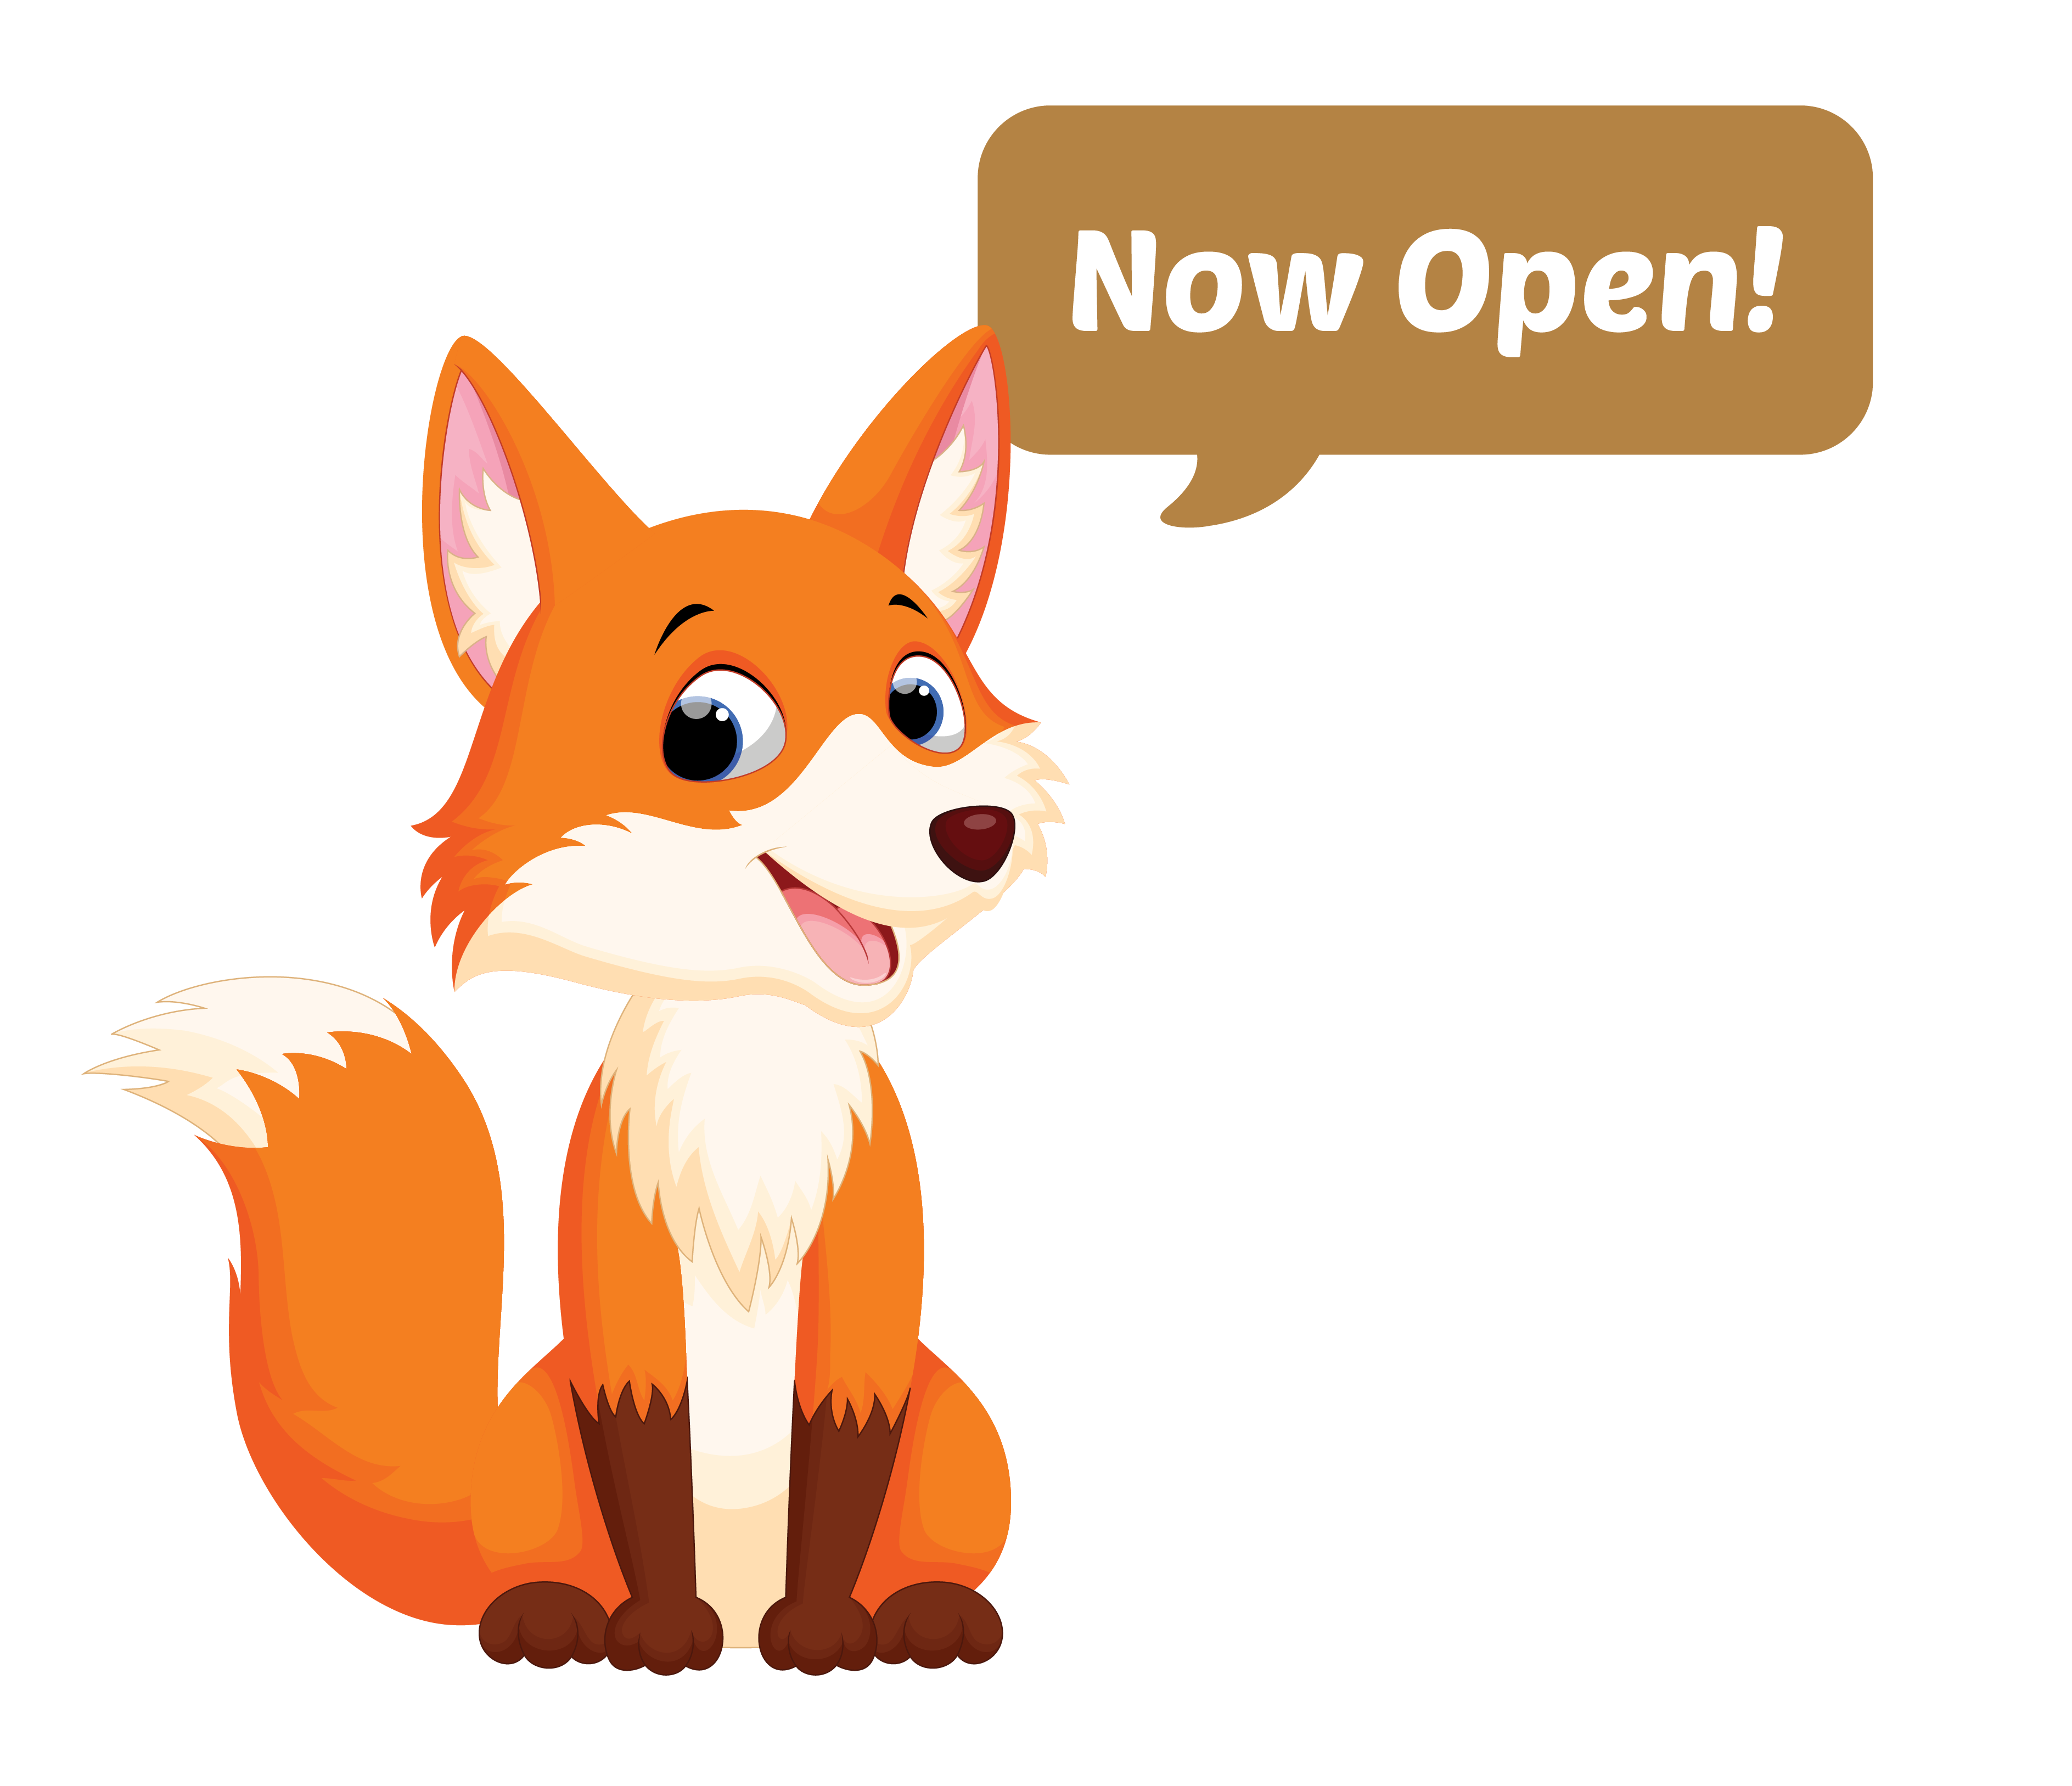 Fox sayings the Kids Play Parks is Now Open